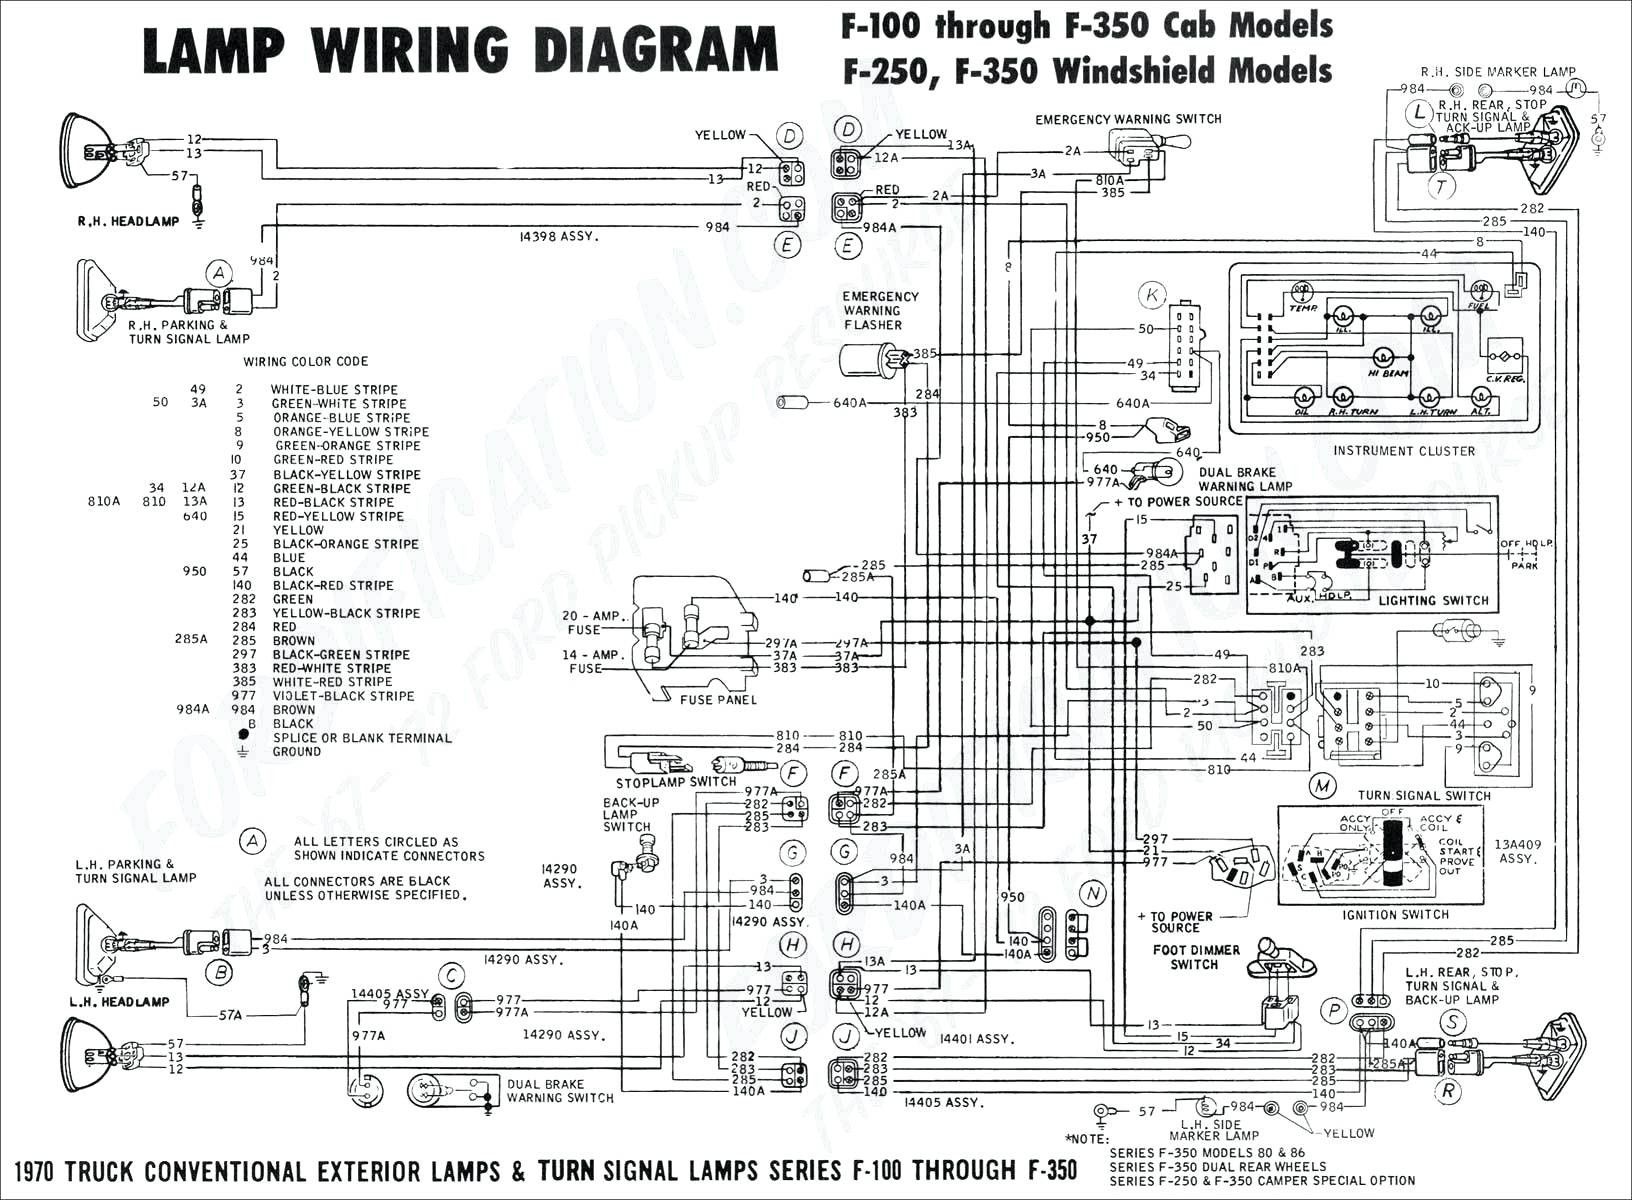 1997 ford Explorer Engine Diagram 97 ford Ranger Trailer Wiring Wiring Diagram Of 1997 ford Explorer Engine Diagram 1997 ford Ranger 4 0 Spark Plug Wiring Diagram original Wire